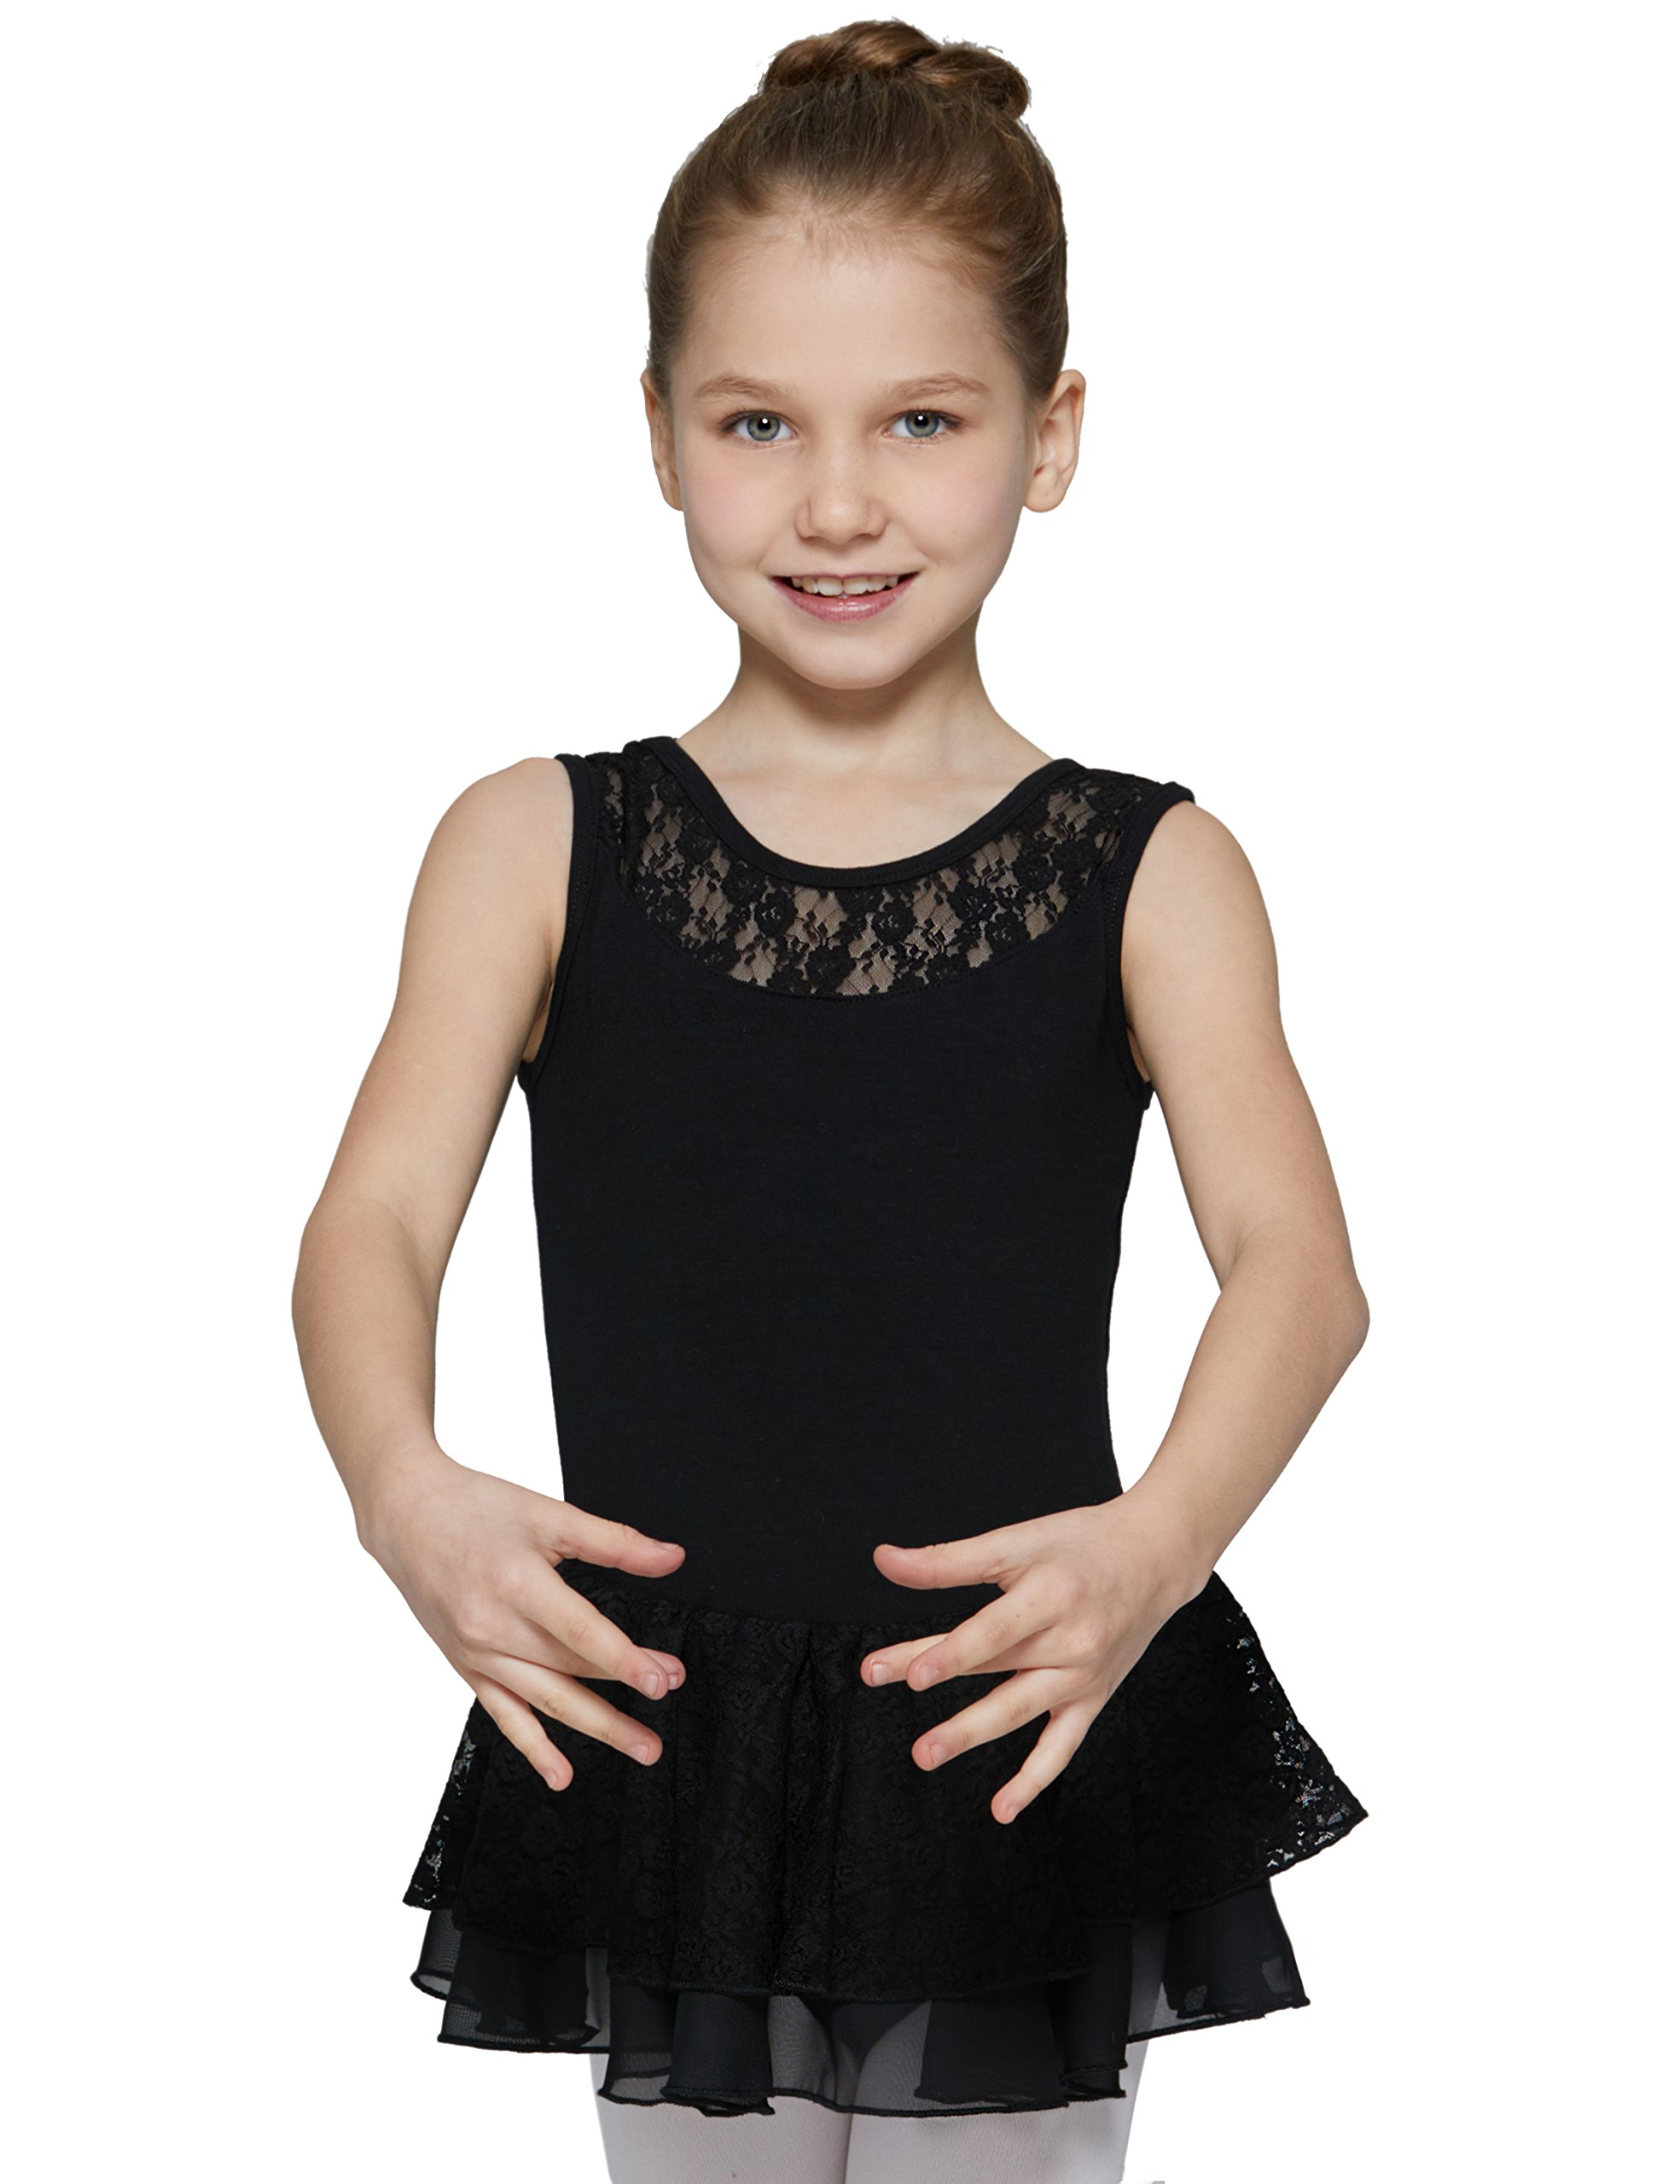 Leotard for Girls with Attached Lace Skirt (Black, Age 6-8,Height 49-52'')